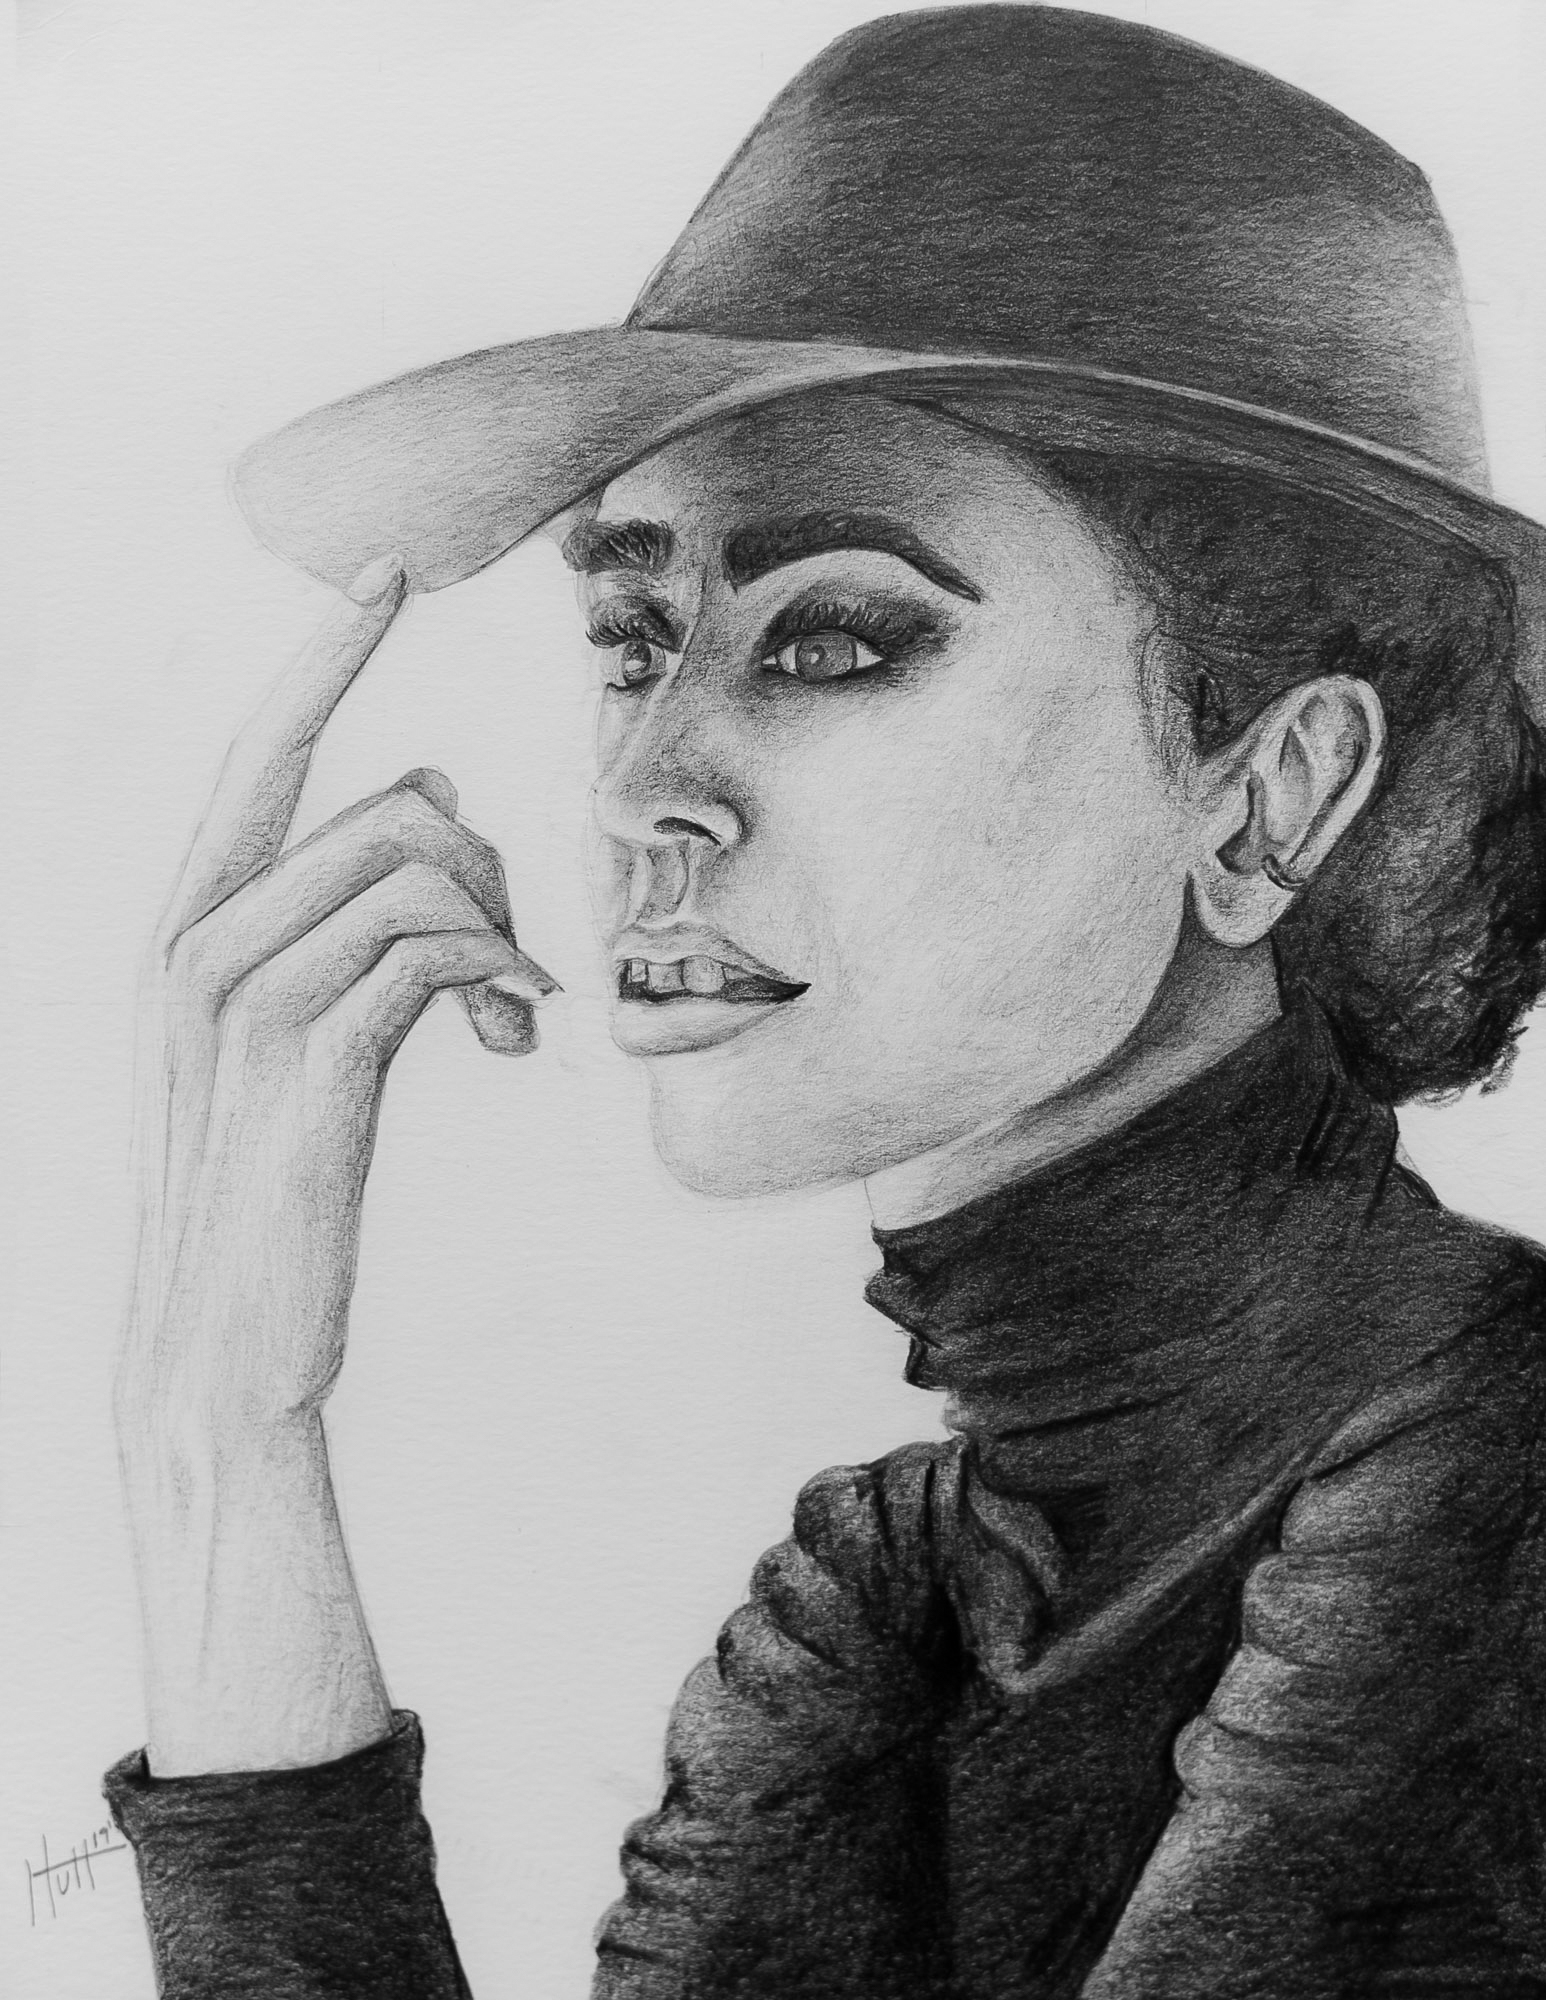 Female figure drawing of Girl a in Hat